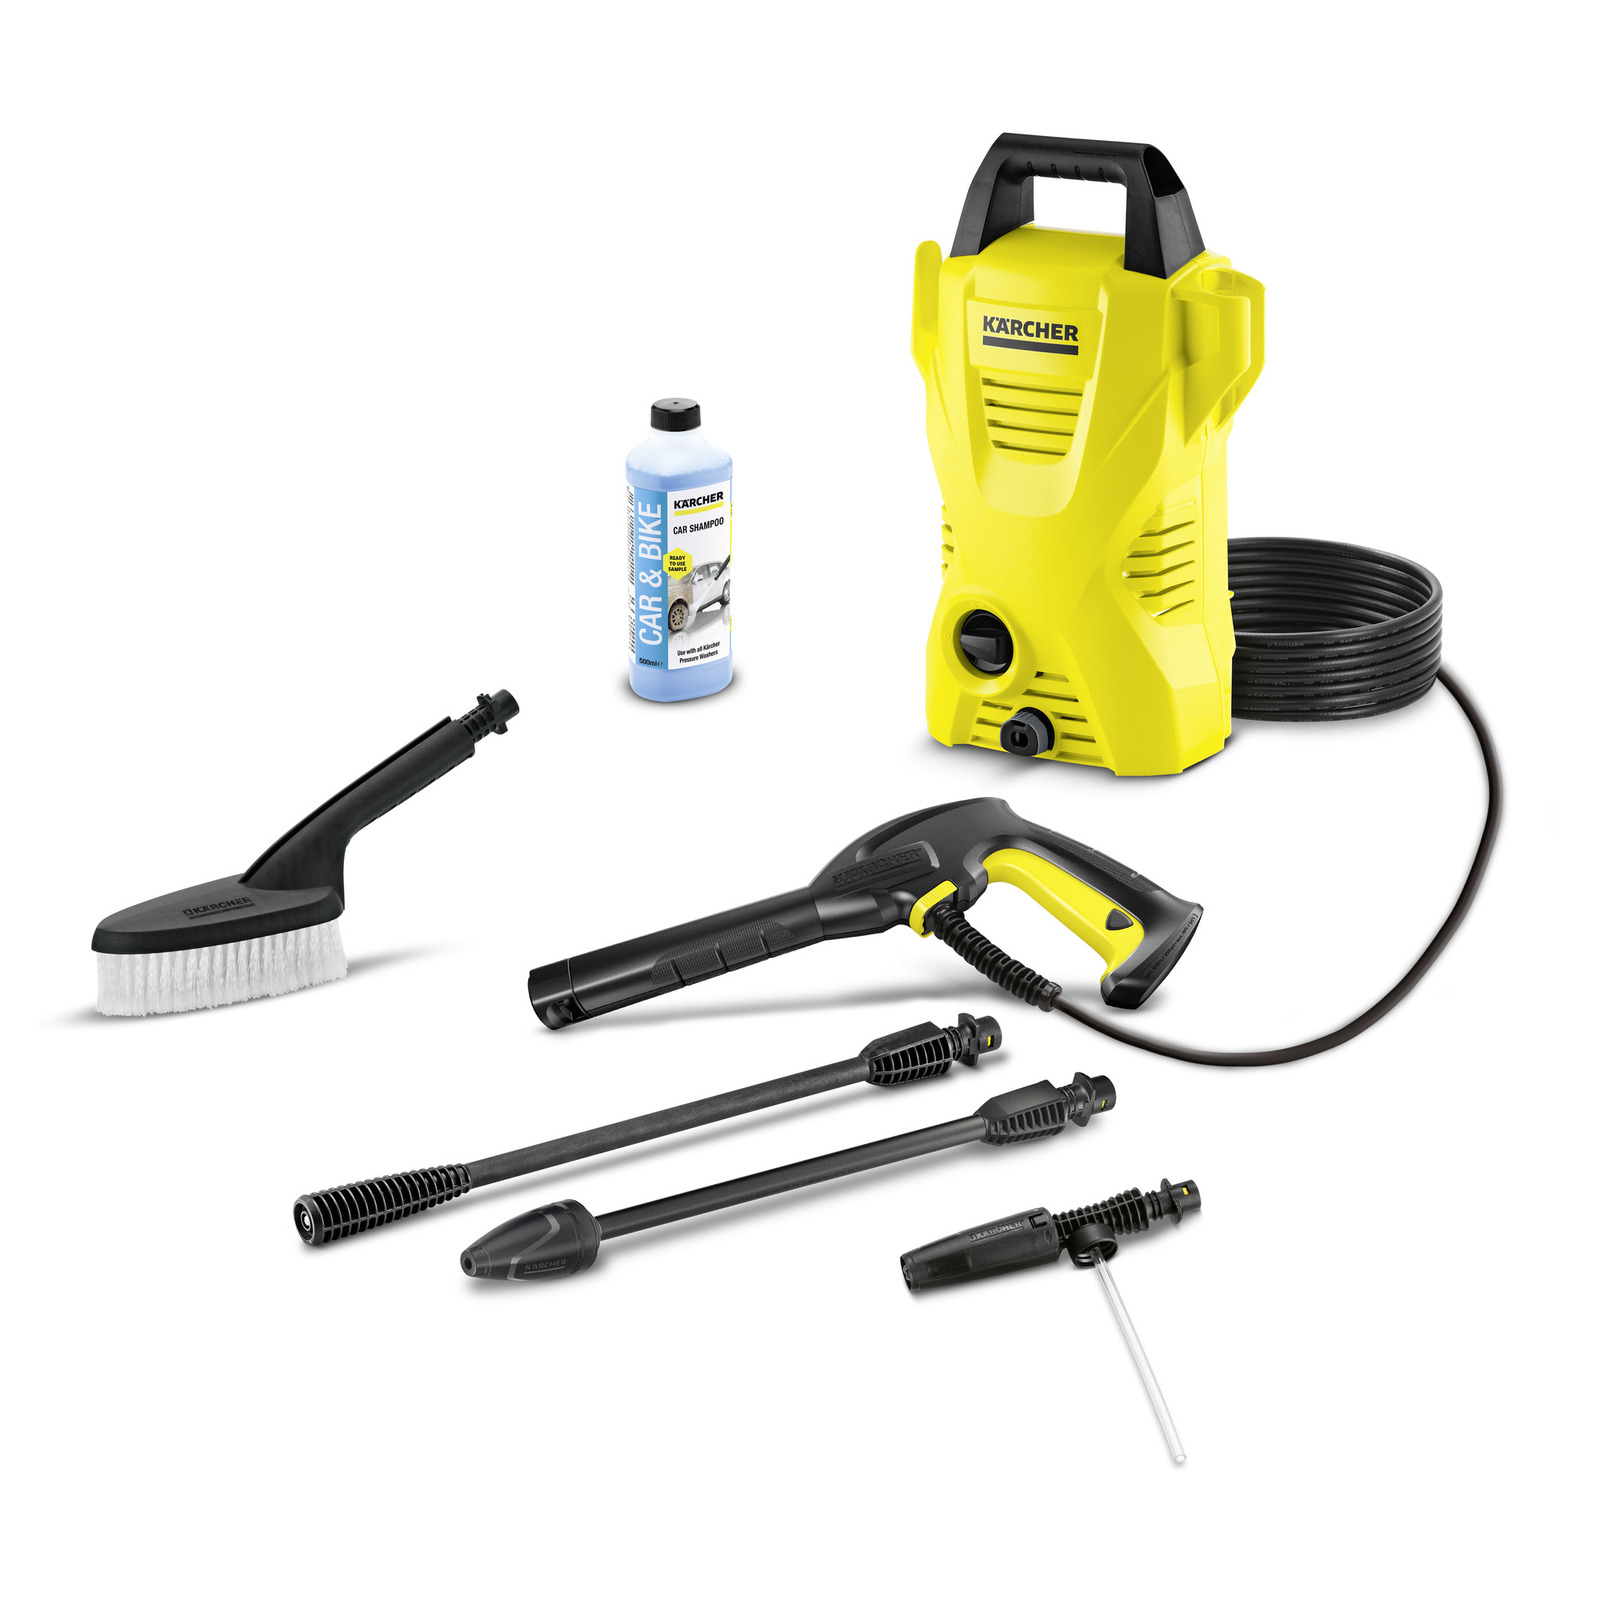 Lot 30339 - V Brand New Karcher K2 Compact Car High Pressure Cleaner With Wash Brush - Foam Nozzle & Car Shampoo